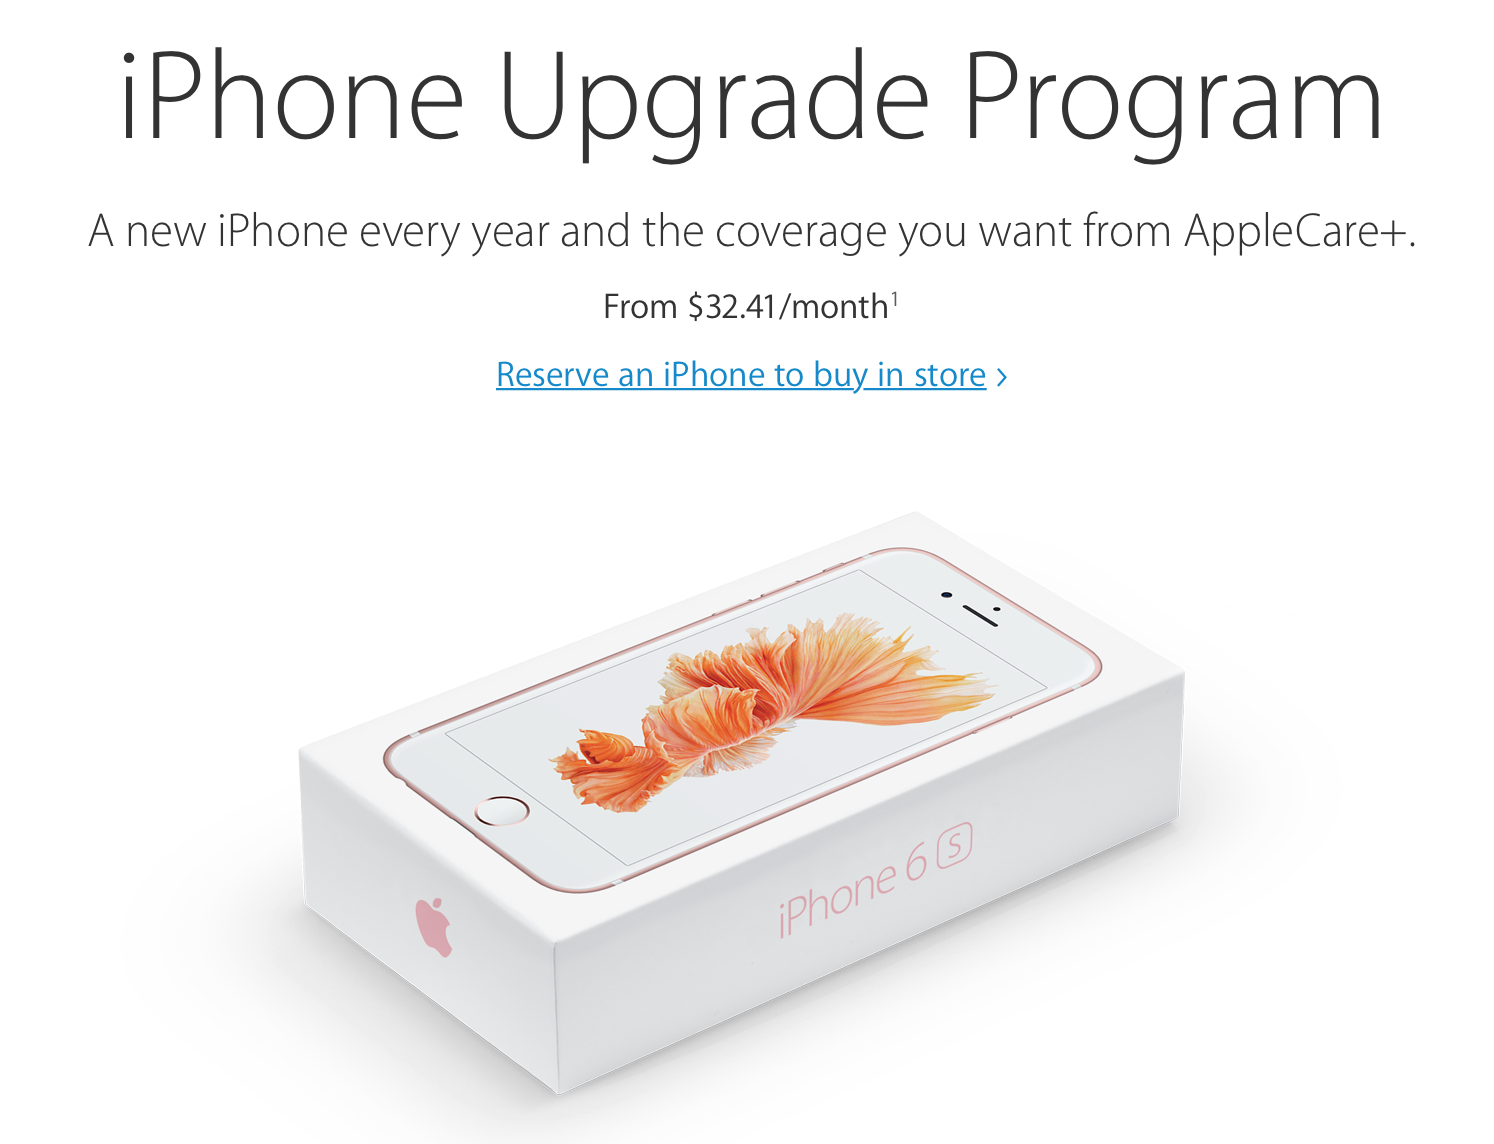 Apple's iPhone Upgrade Program is proving popular among users